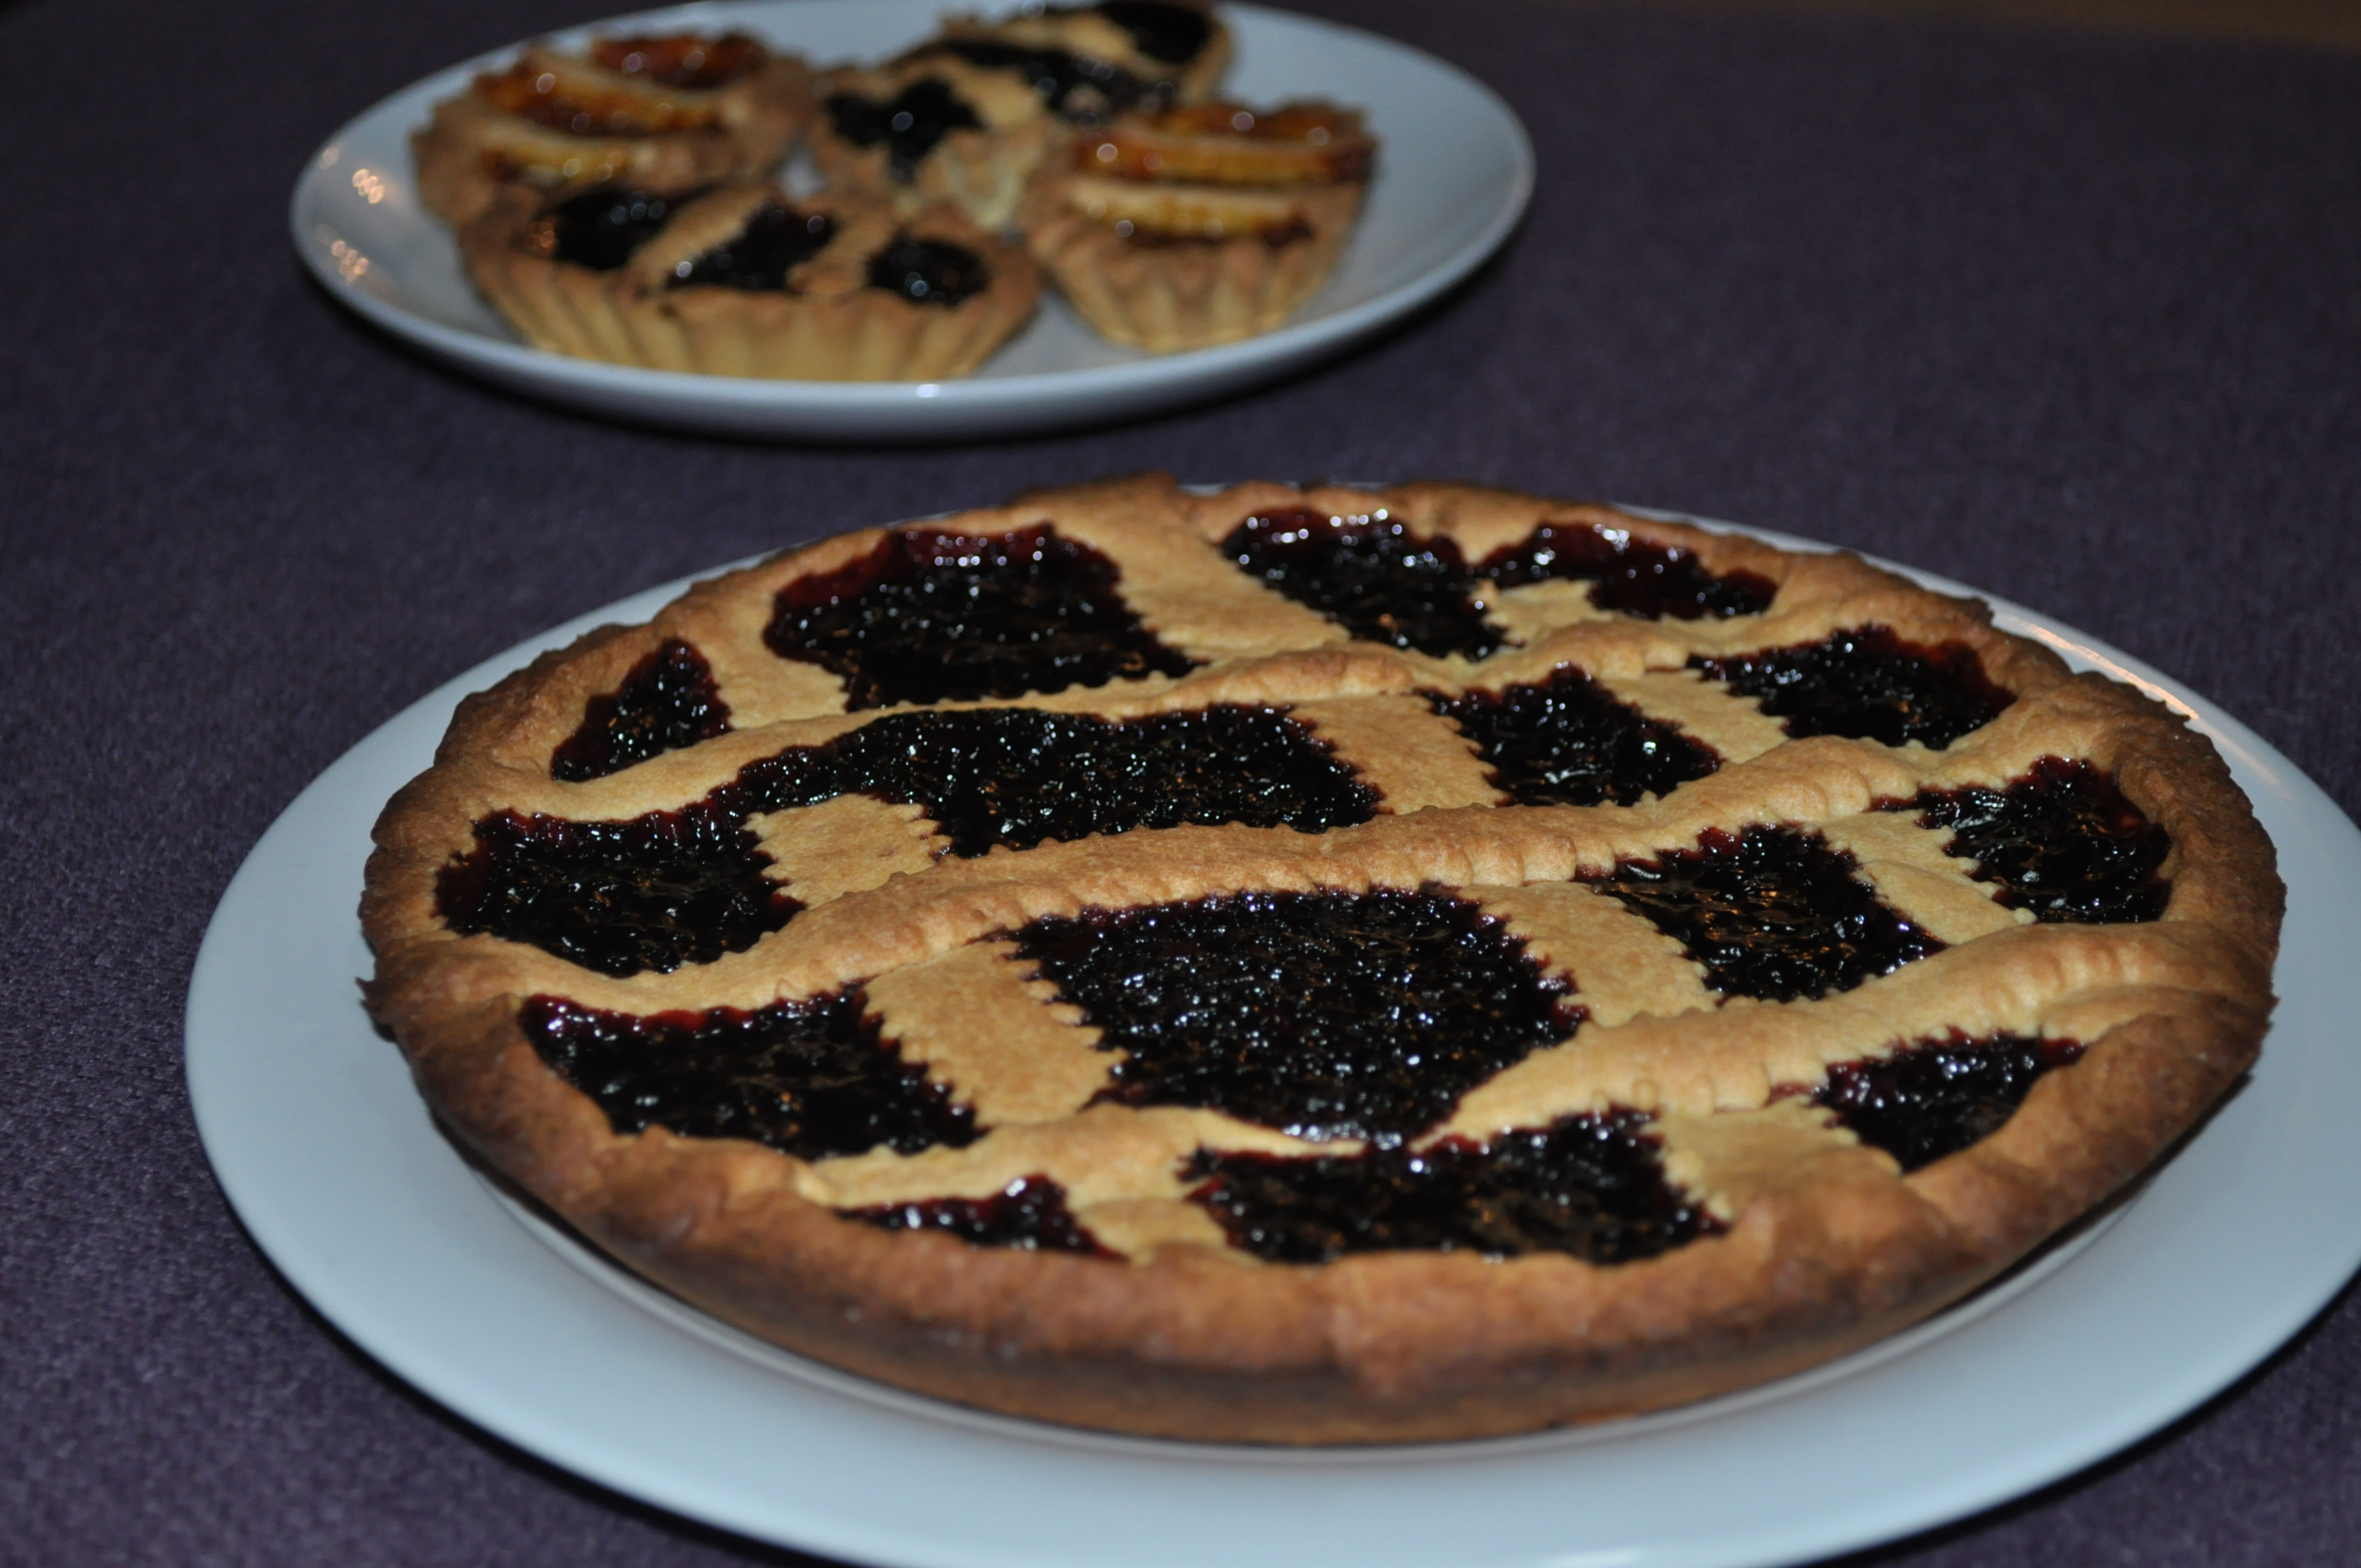 Crostata creativa